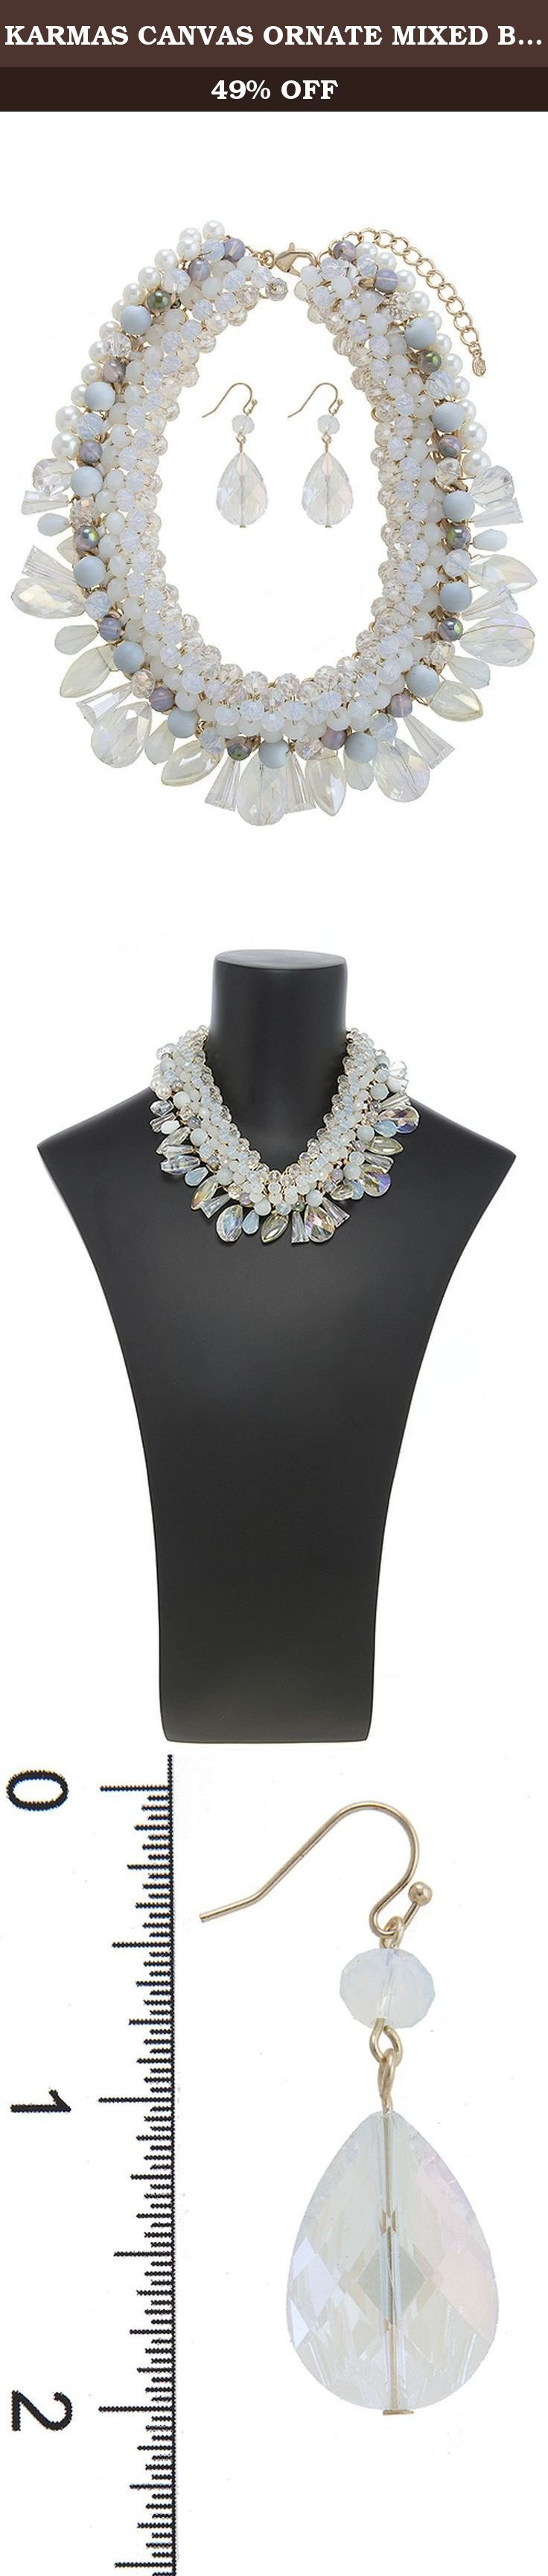 KARMAS CANVAS ORNATE MIXED BEADED BIB NECKLACE SET. FASHION DESTINATION PRESENTS KARMAS CANVAS ORNATE MIXED BEADED BIB NECKLACE SET. Buy brand-name Fashion Jewelry for everyday discount prices with Fashion Destination! Everyday LOW shipping *. Read product reviews on Fashion Necklaces, Fashion Bracelets, Fashion Earrings & more. Shop the Fashion Destination store for a wide selection of rings, bracelets, necklaces, earrings and diamond jewelry. Whether you are searching for men's jewelry...